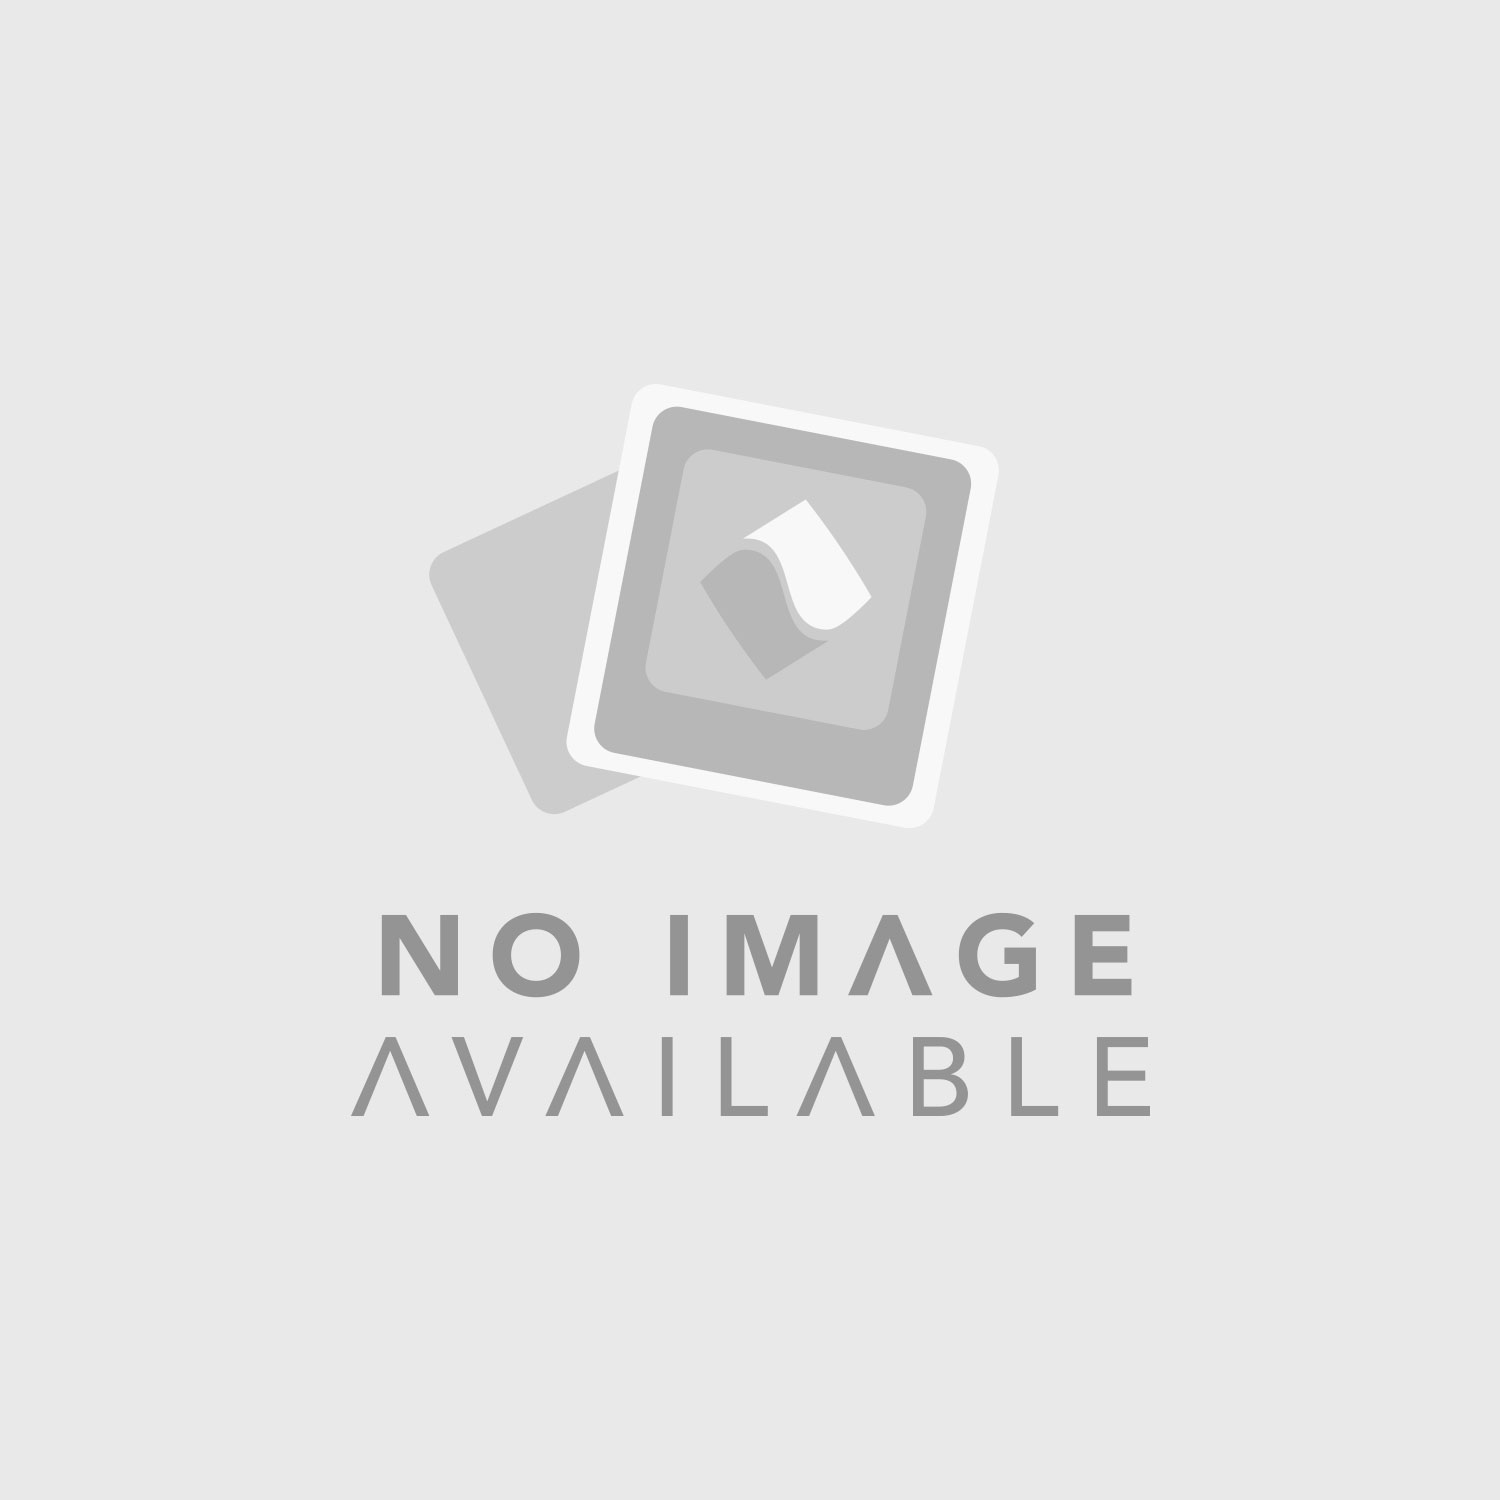 Yamaha HS5I 2-Way Bi-Amp Powered Studio Monitor (Single, White)